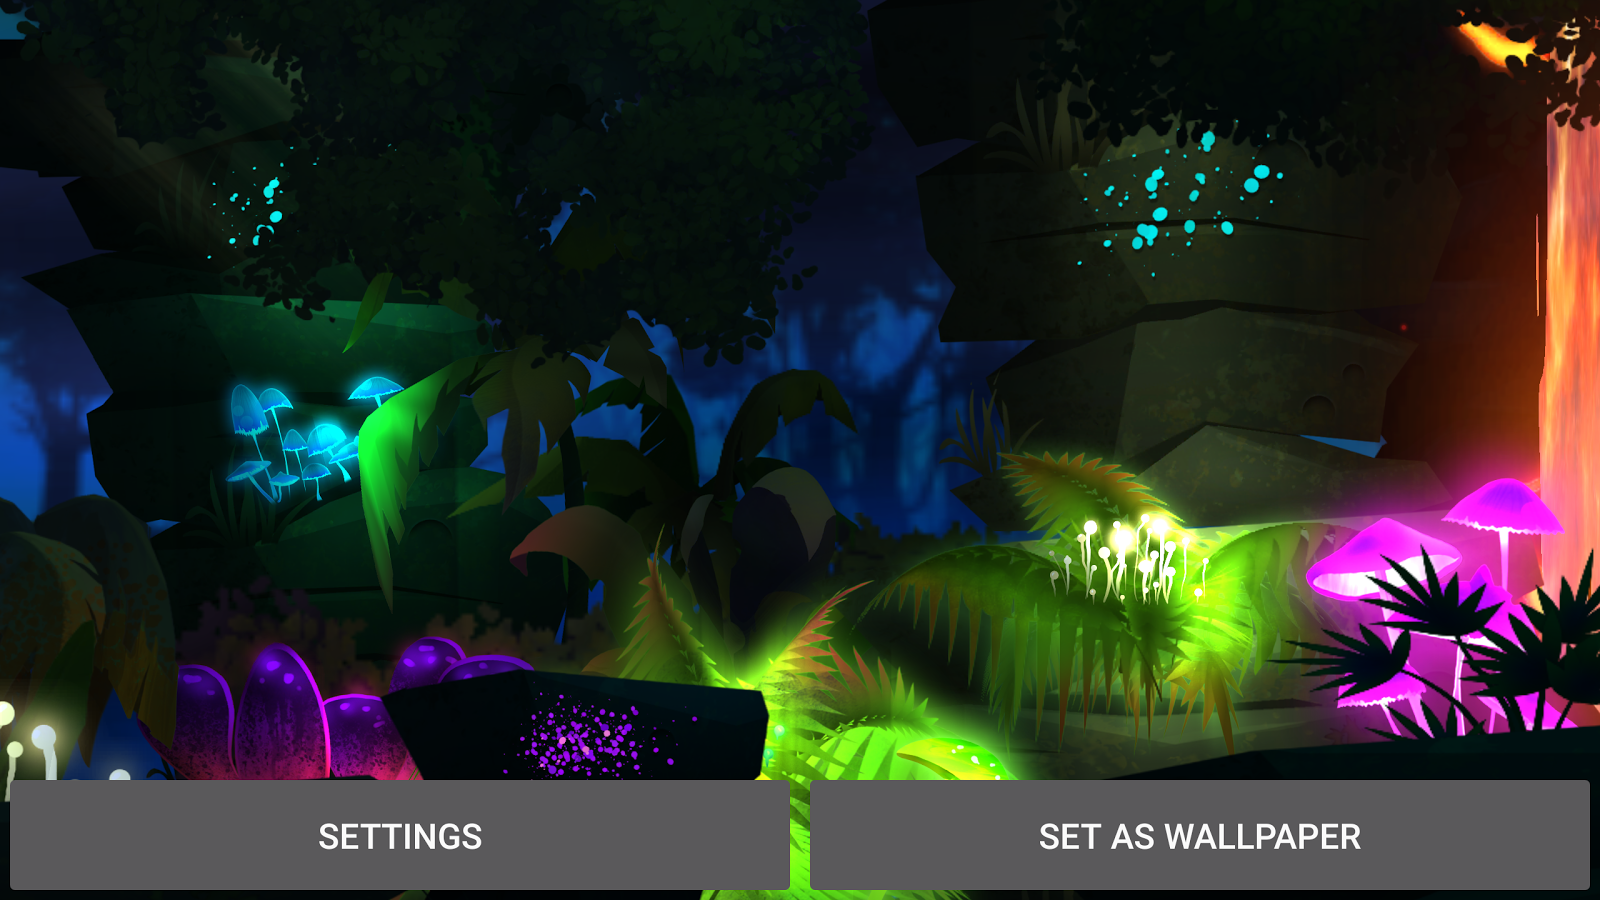 Firefly Jungle Live Wallpaper Screenshot 11